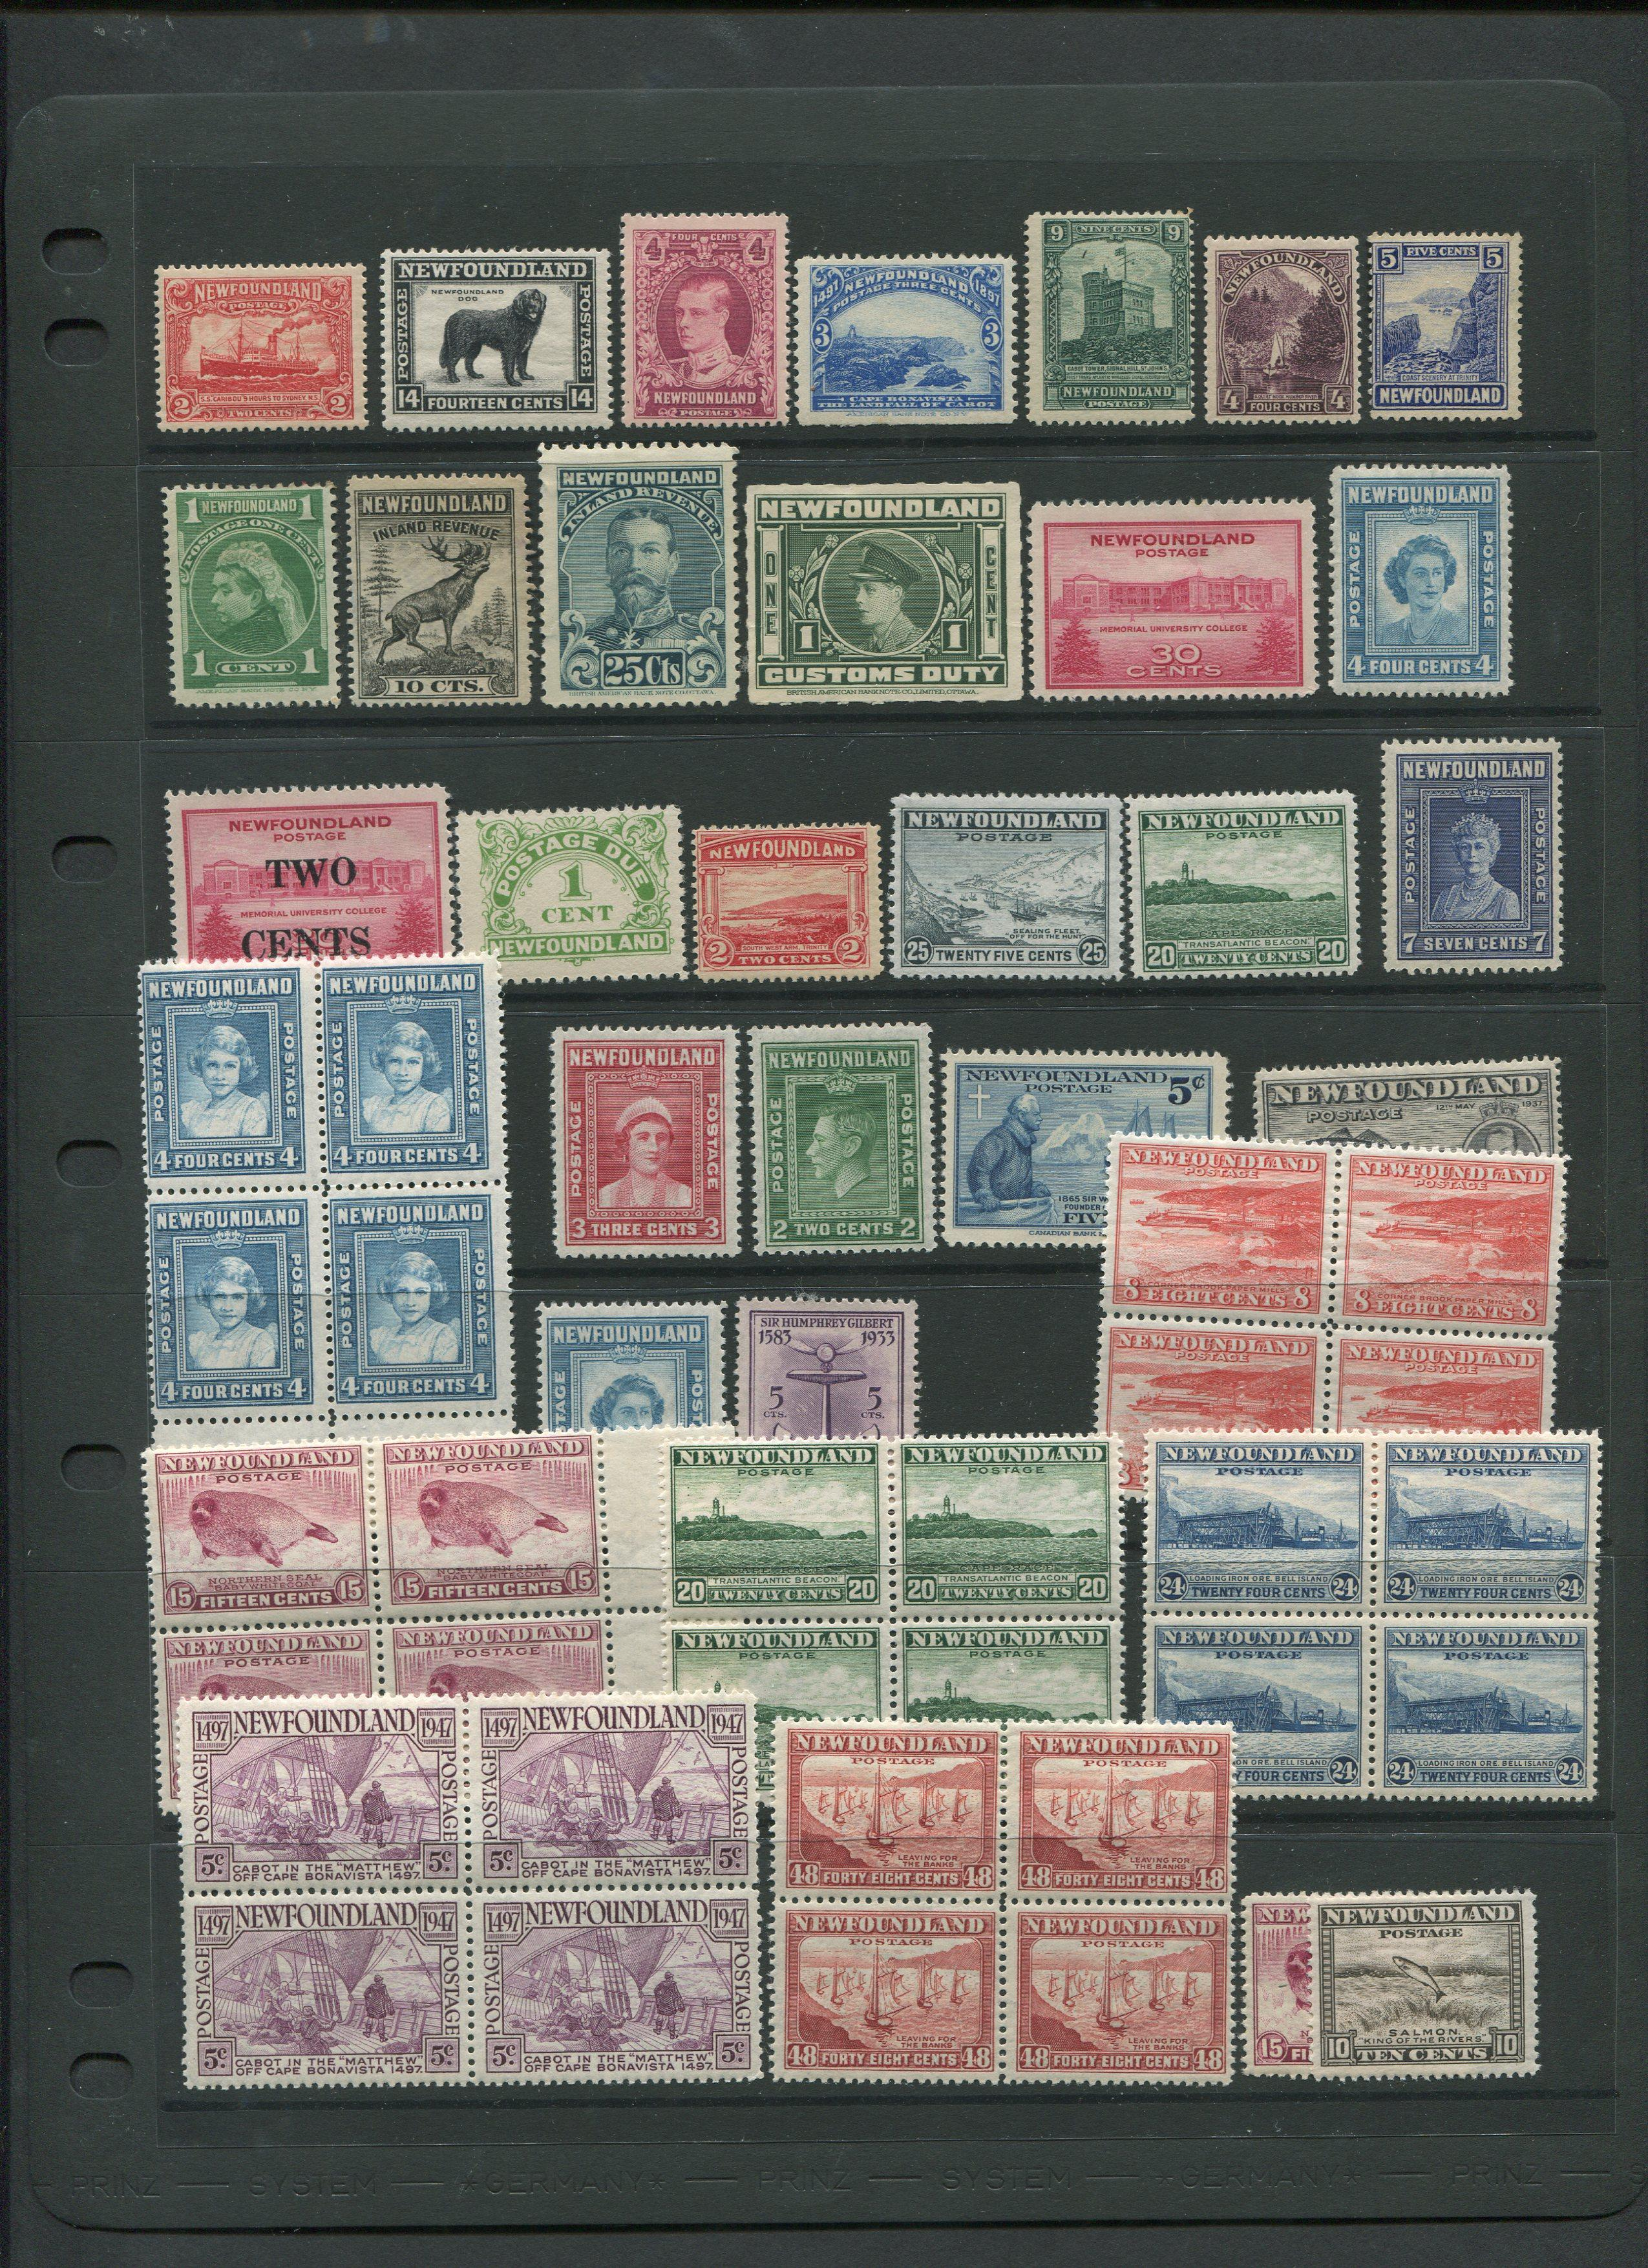 Canada Newfoundland Mint Stamp Collection